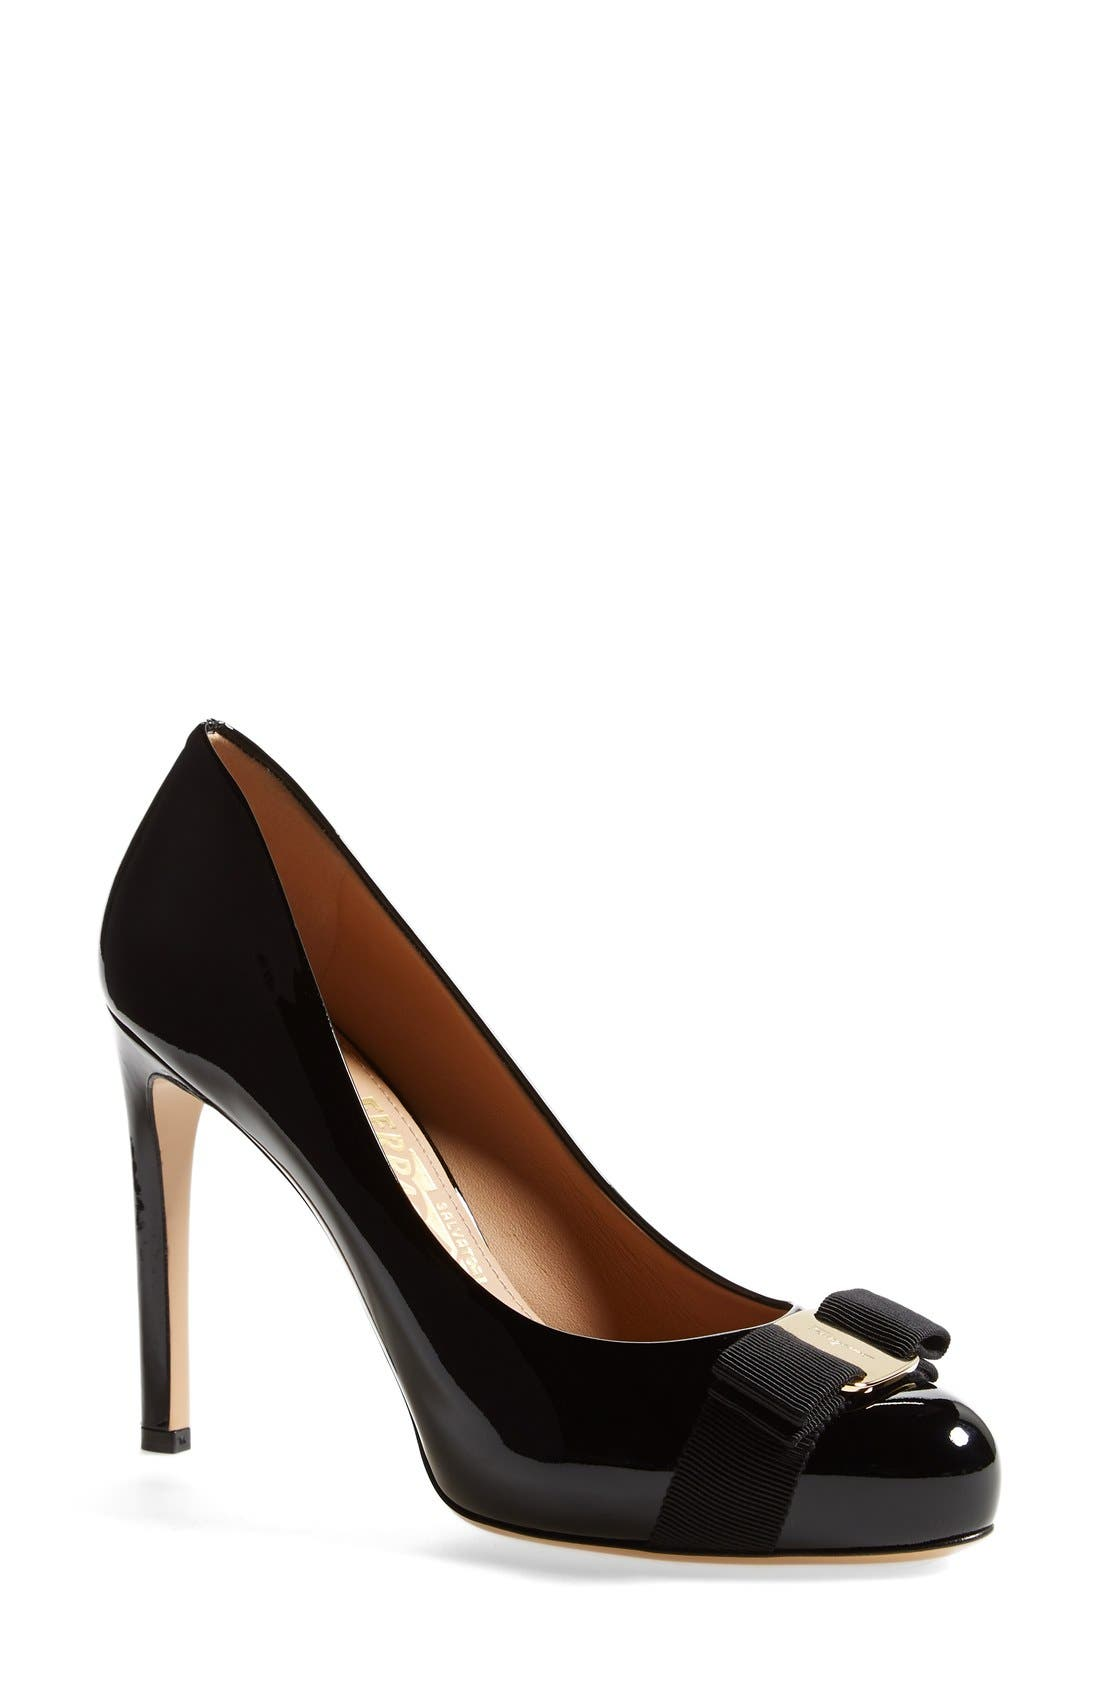 Pimpa Rounded Toe Bow Pump,                         Main,                         color, Nero Patent